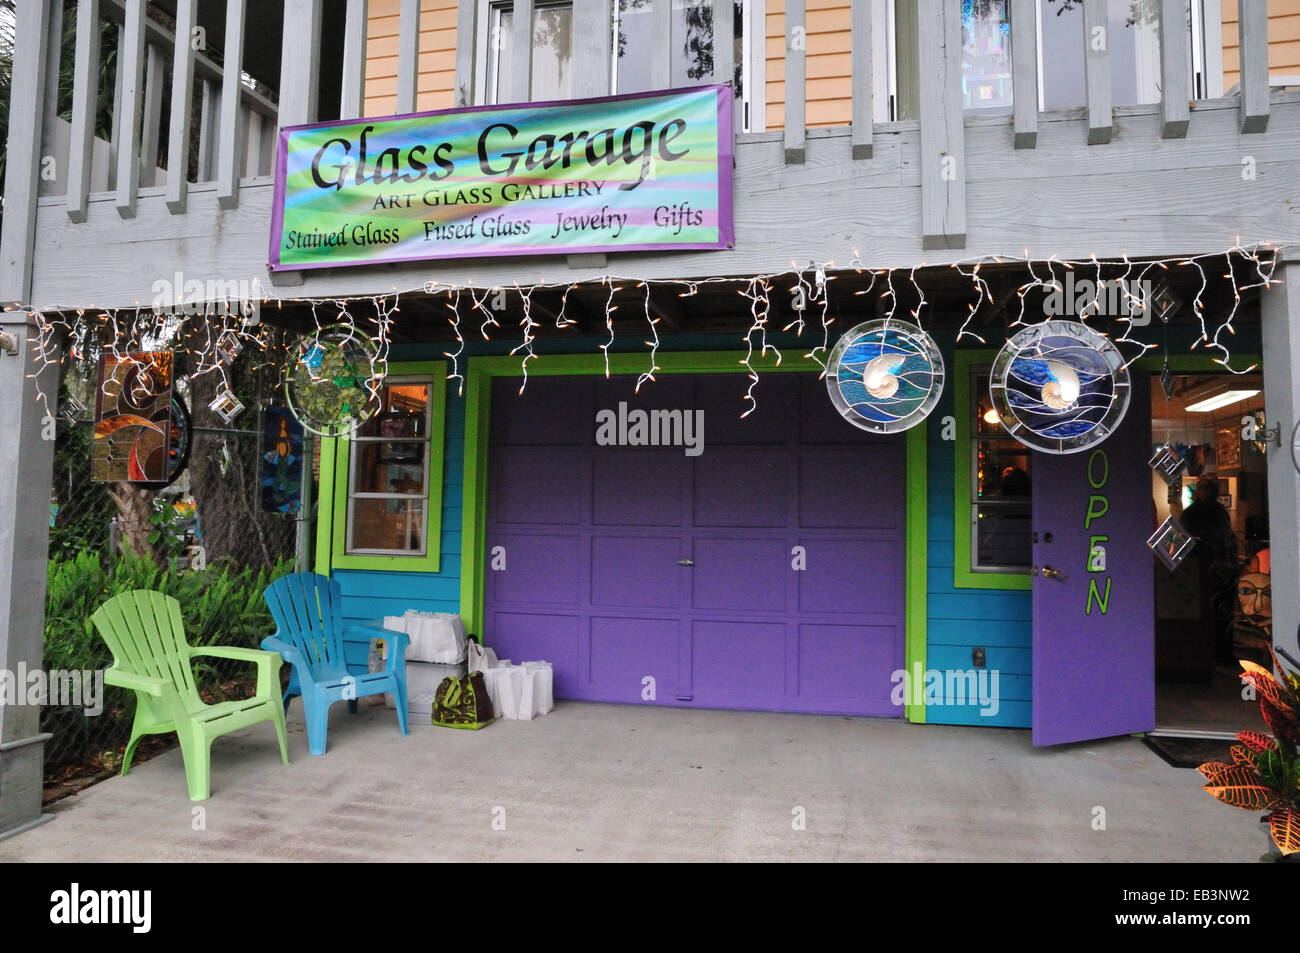 Art Garage Florida Entrance To The Glass Garage Old Homosassa Florida Stock Photo